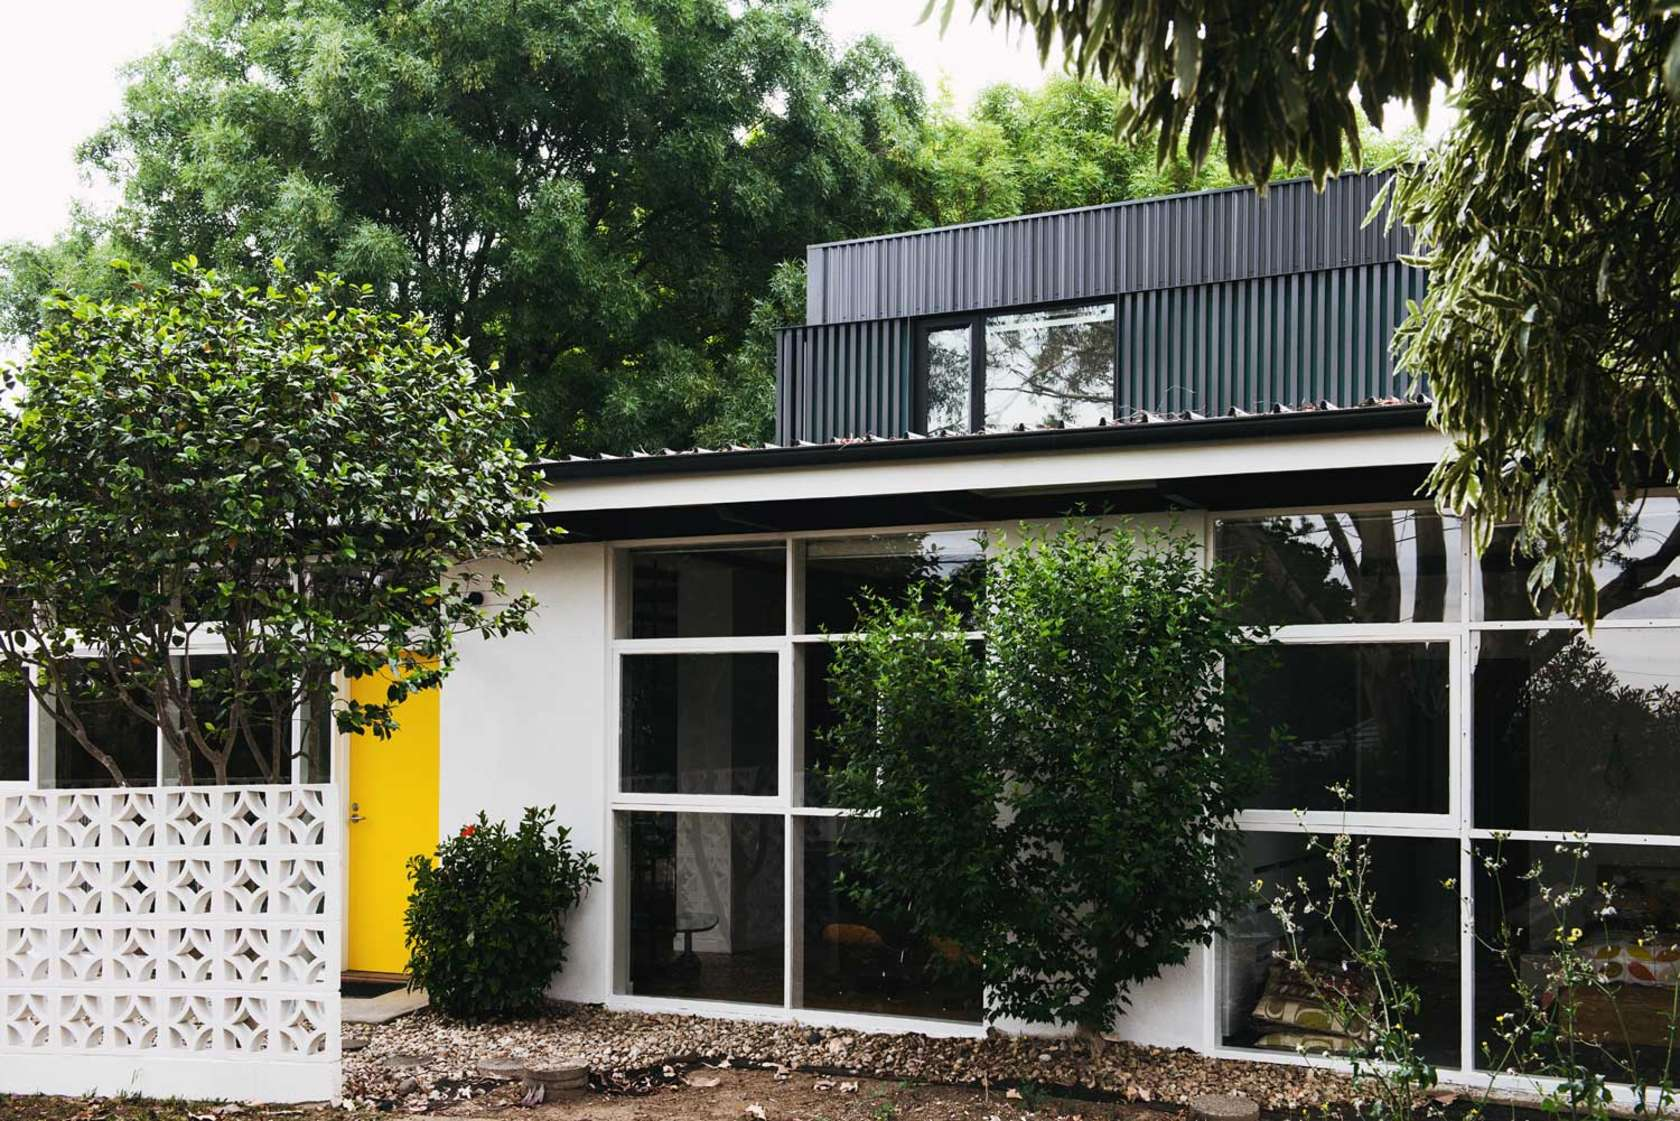 Pokey 1960s home gets a much needed 21st century reboot for Residential landscape architects melbourne